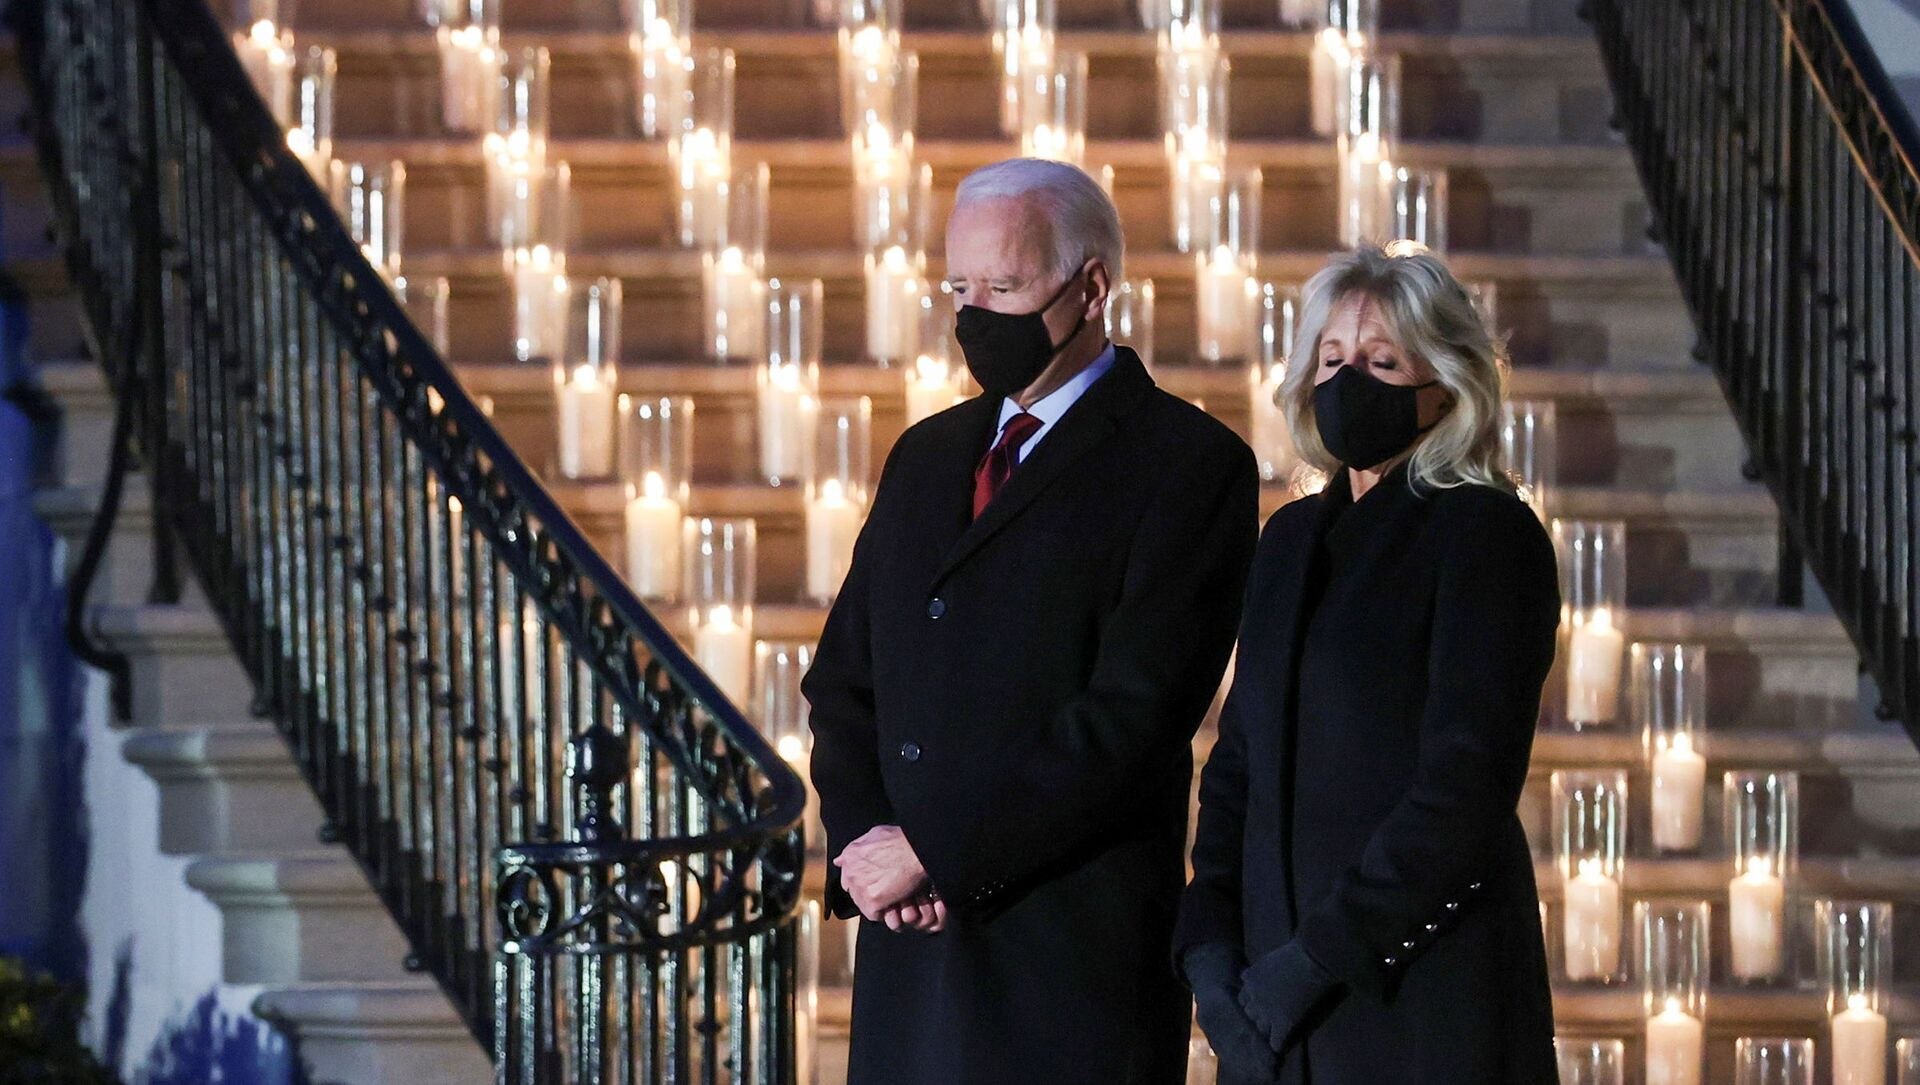 U.S. President Joe Biden and his wife Jill Biden attend a moment of silence and candle lighting ceremony to commemorate the grim milestone of 500,000 U.S. deaths from the coronavirus disease (COVID-19) at the White House in Washington, U.S., February 22, 2021.  - Sputnik Italia, 1920, 30.04.2021